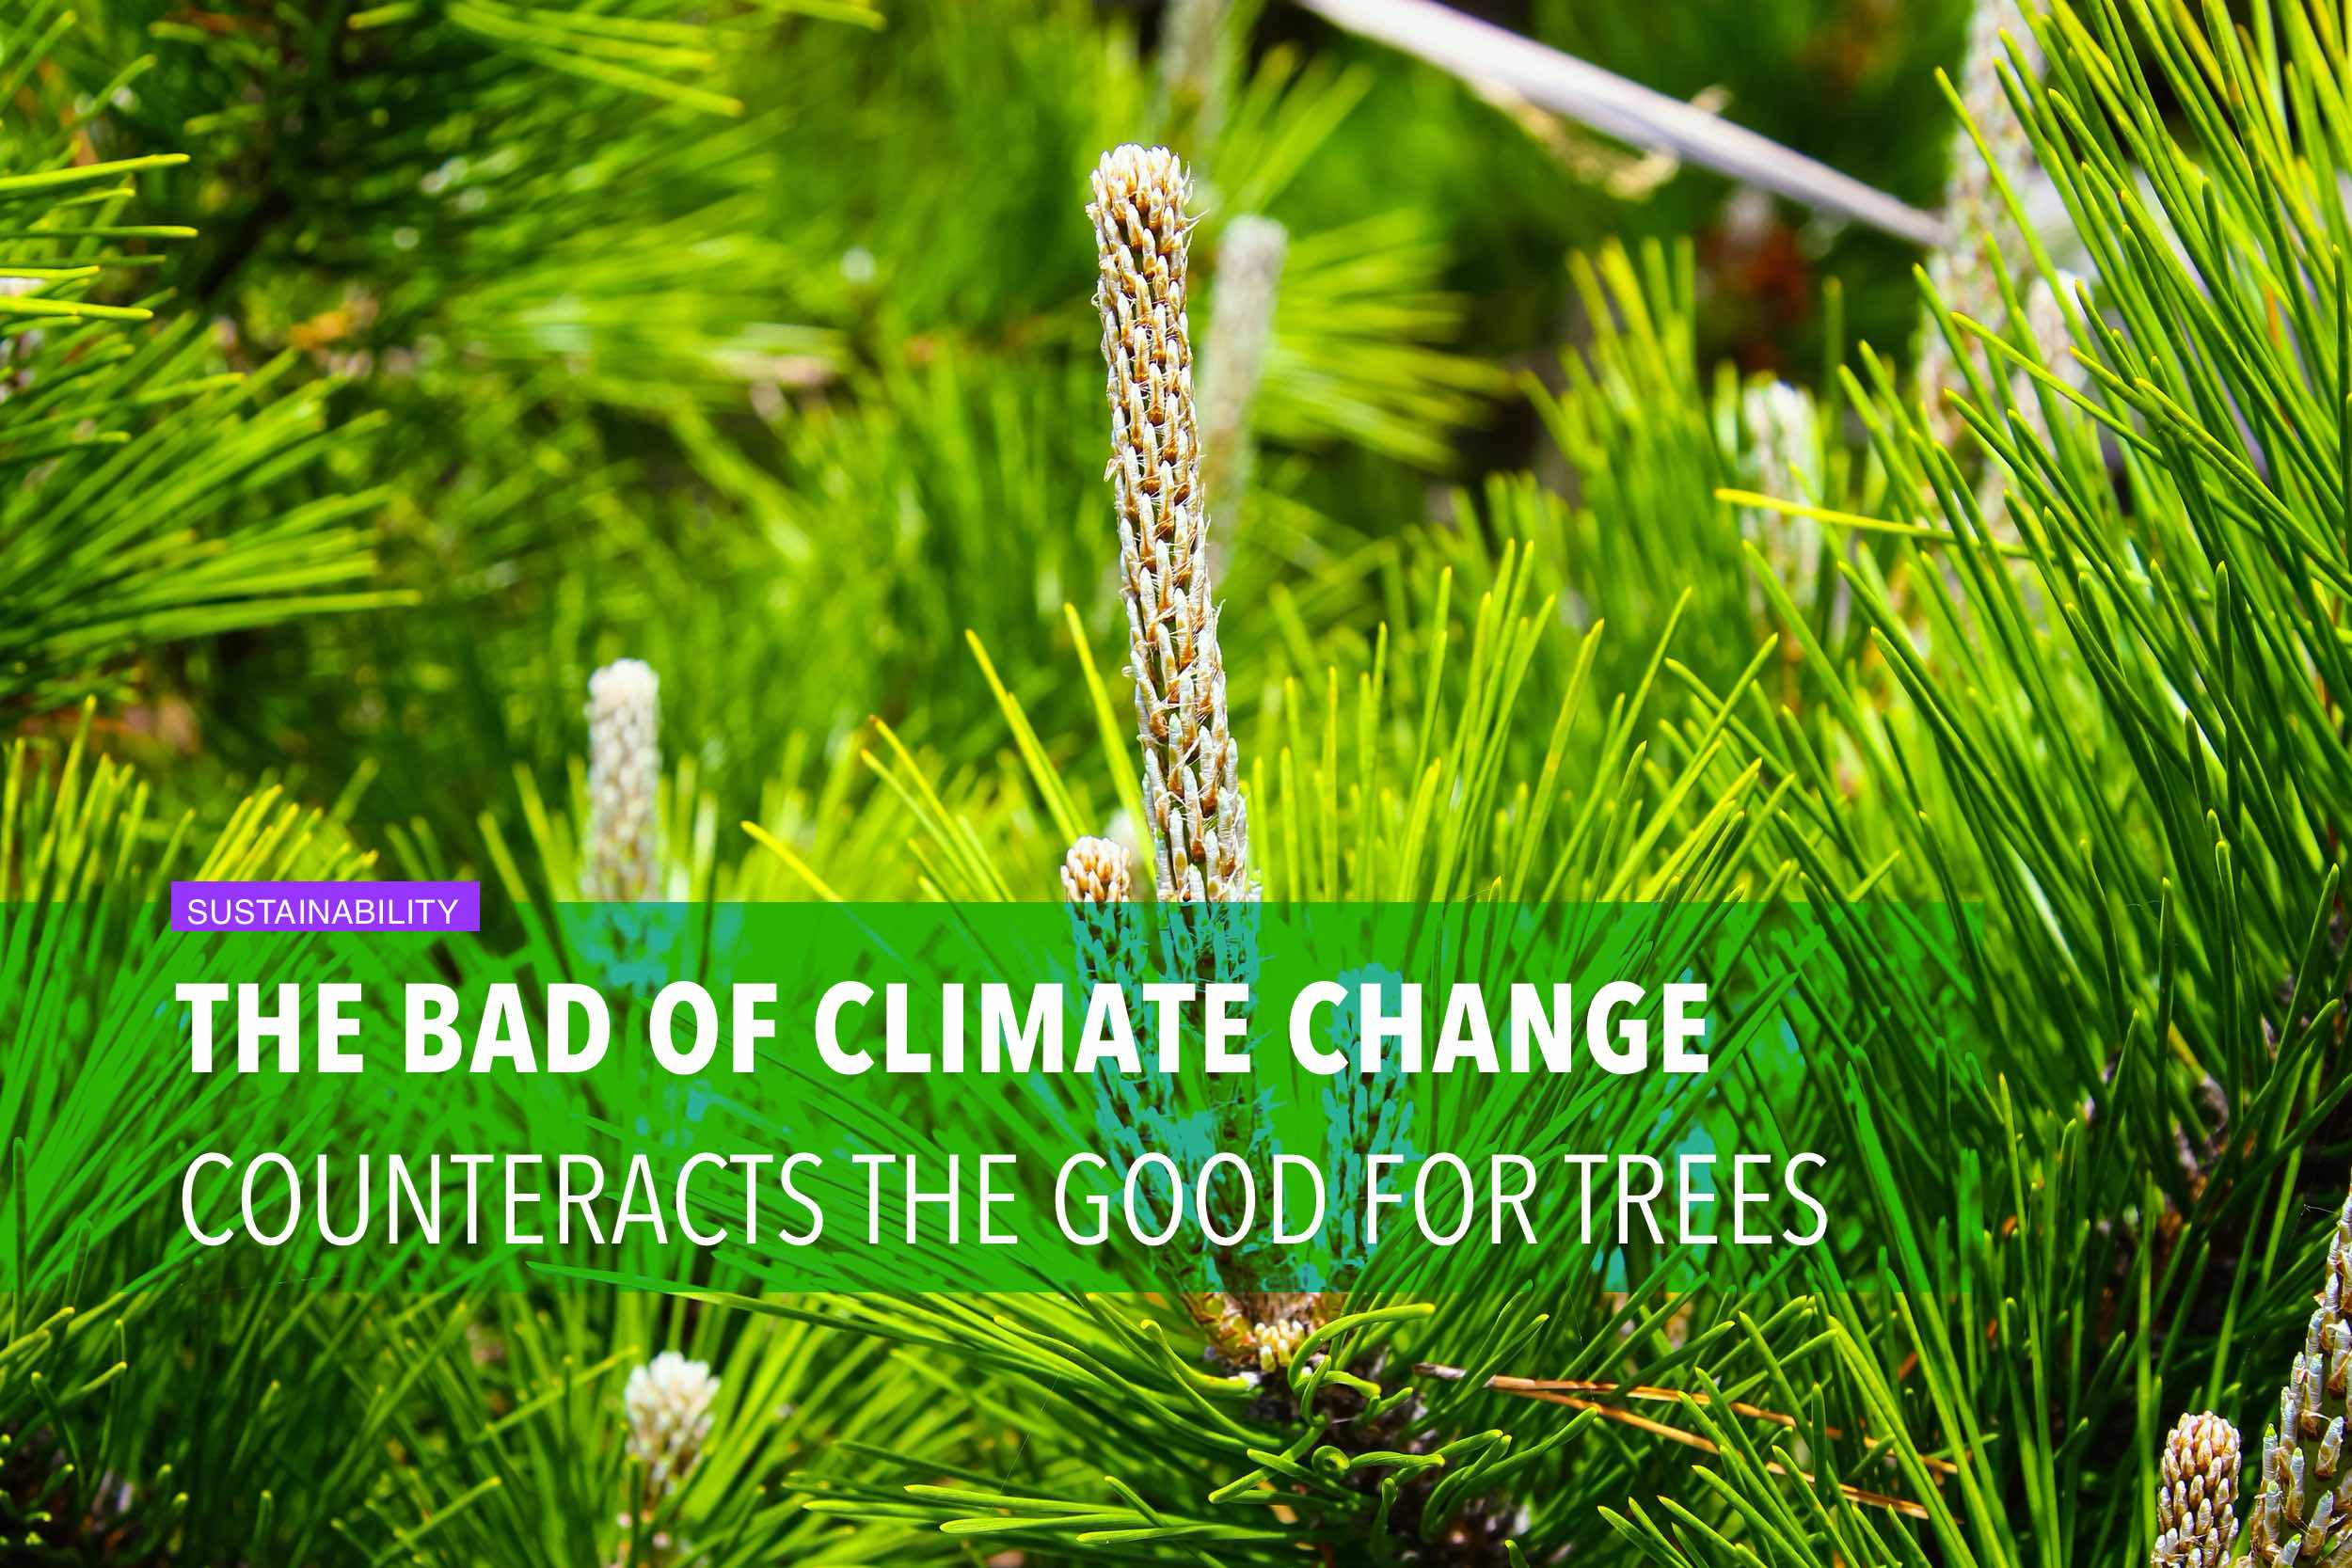 The bad of climate change counteracts the good for trees